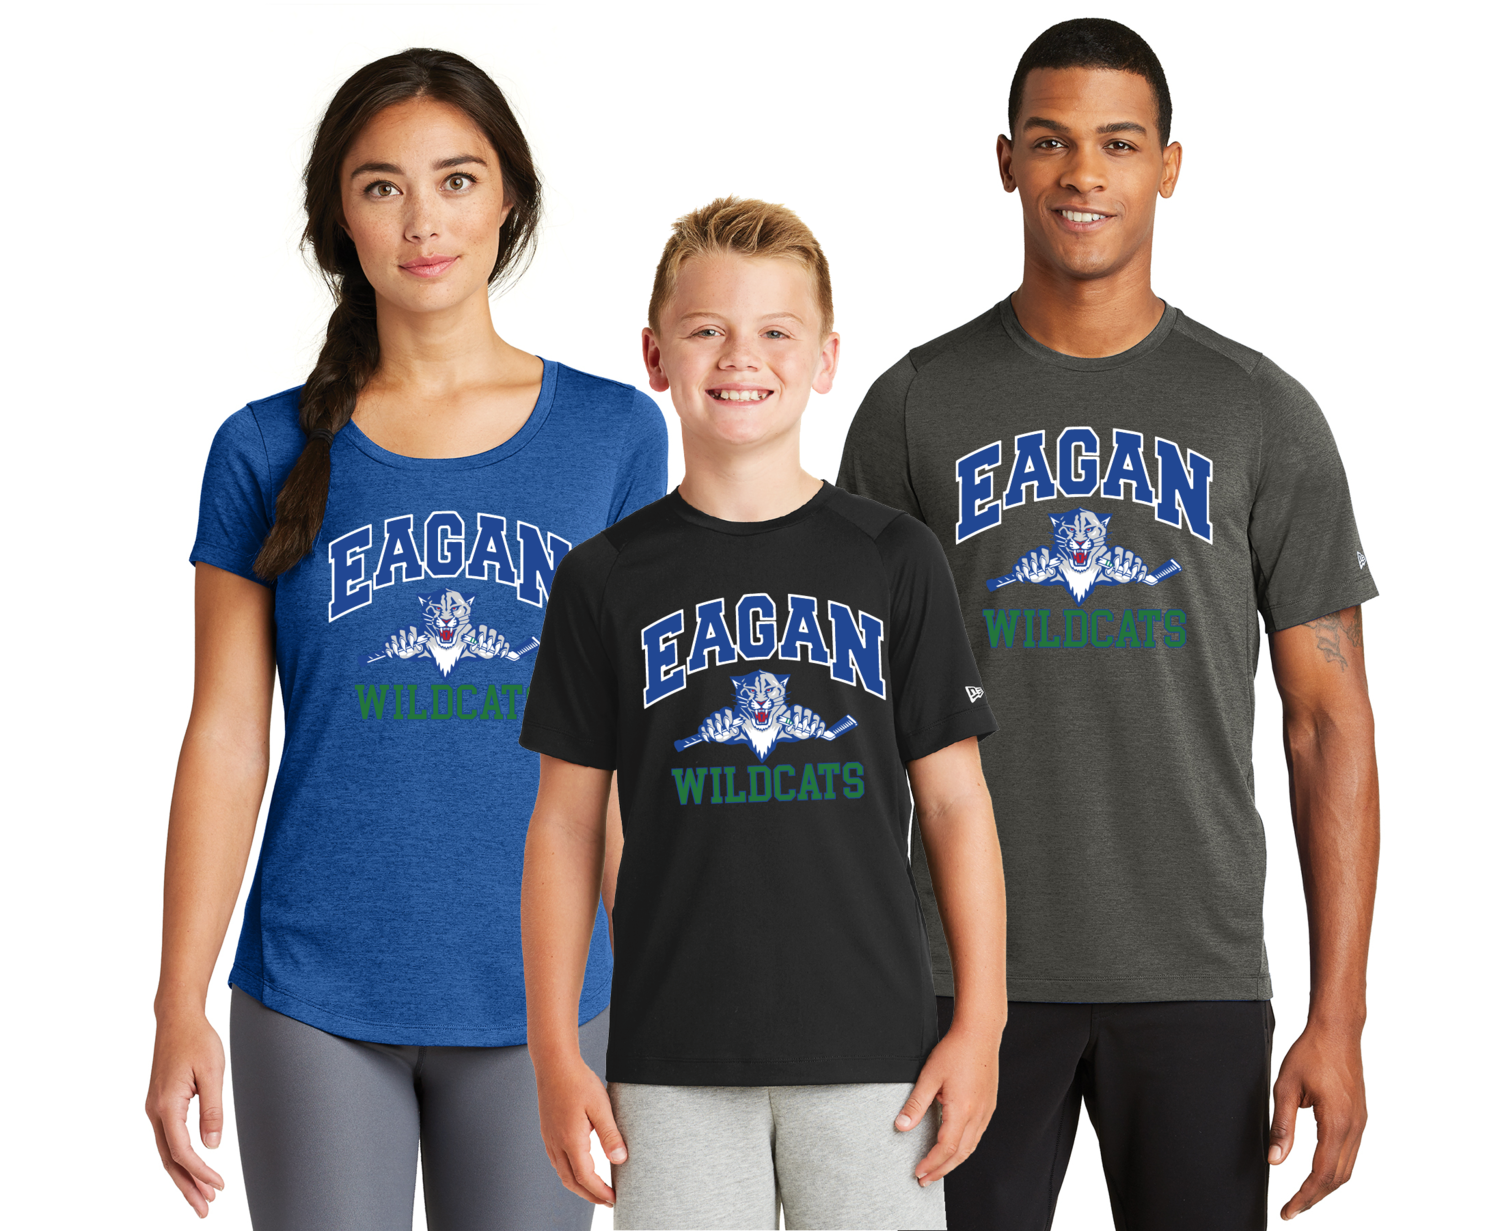 Eagan Hockey Performance Crew Tee - Adult and Youth